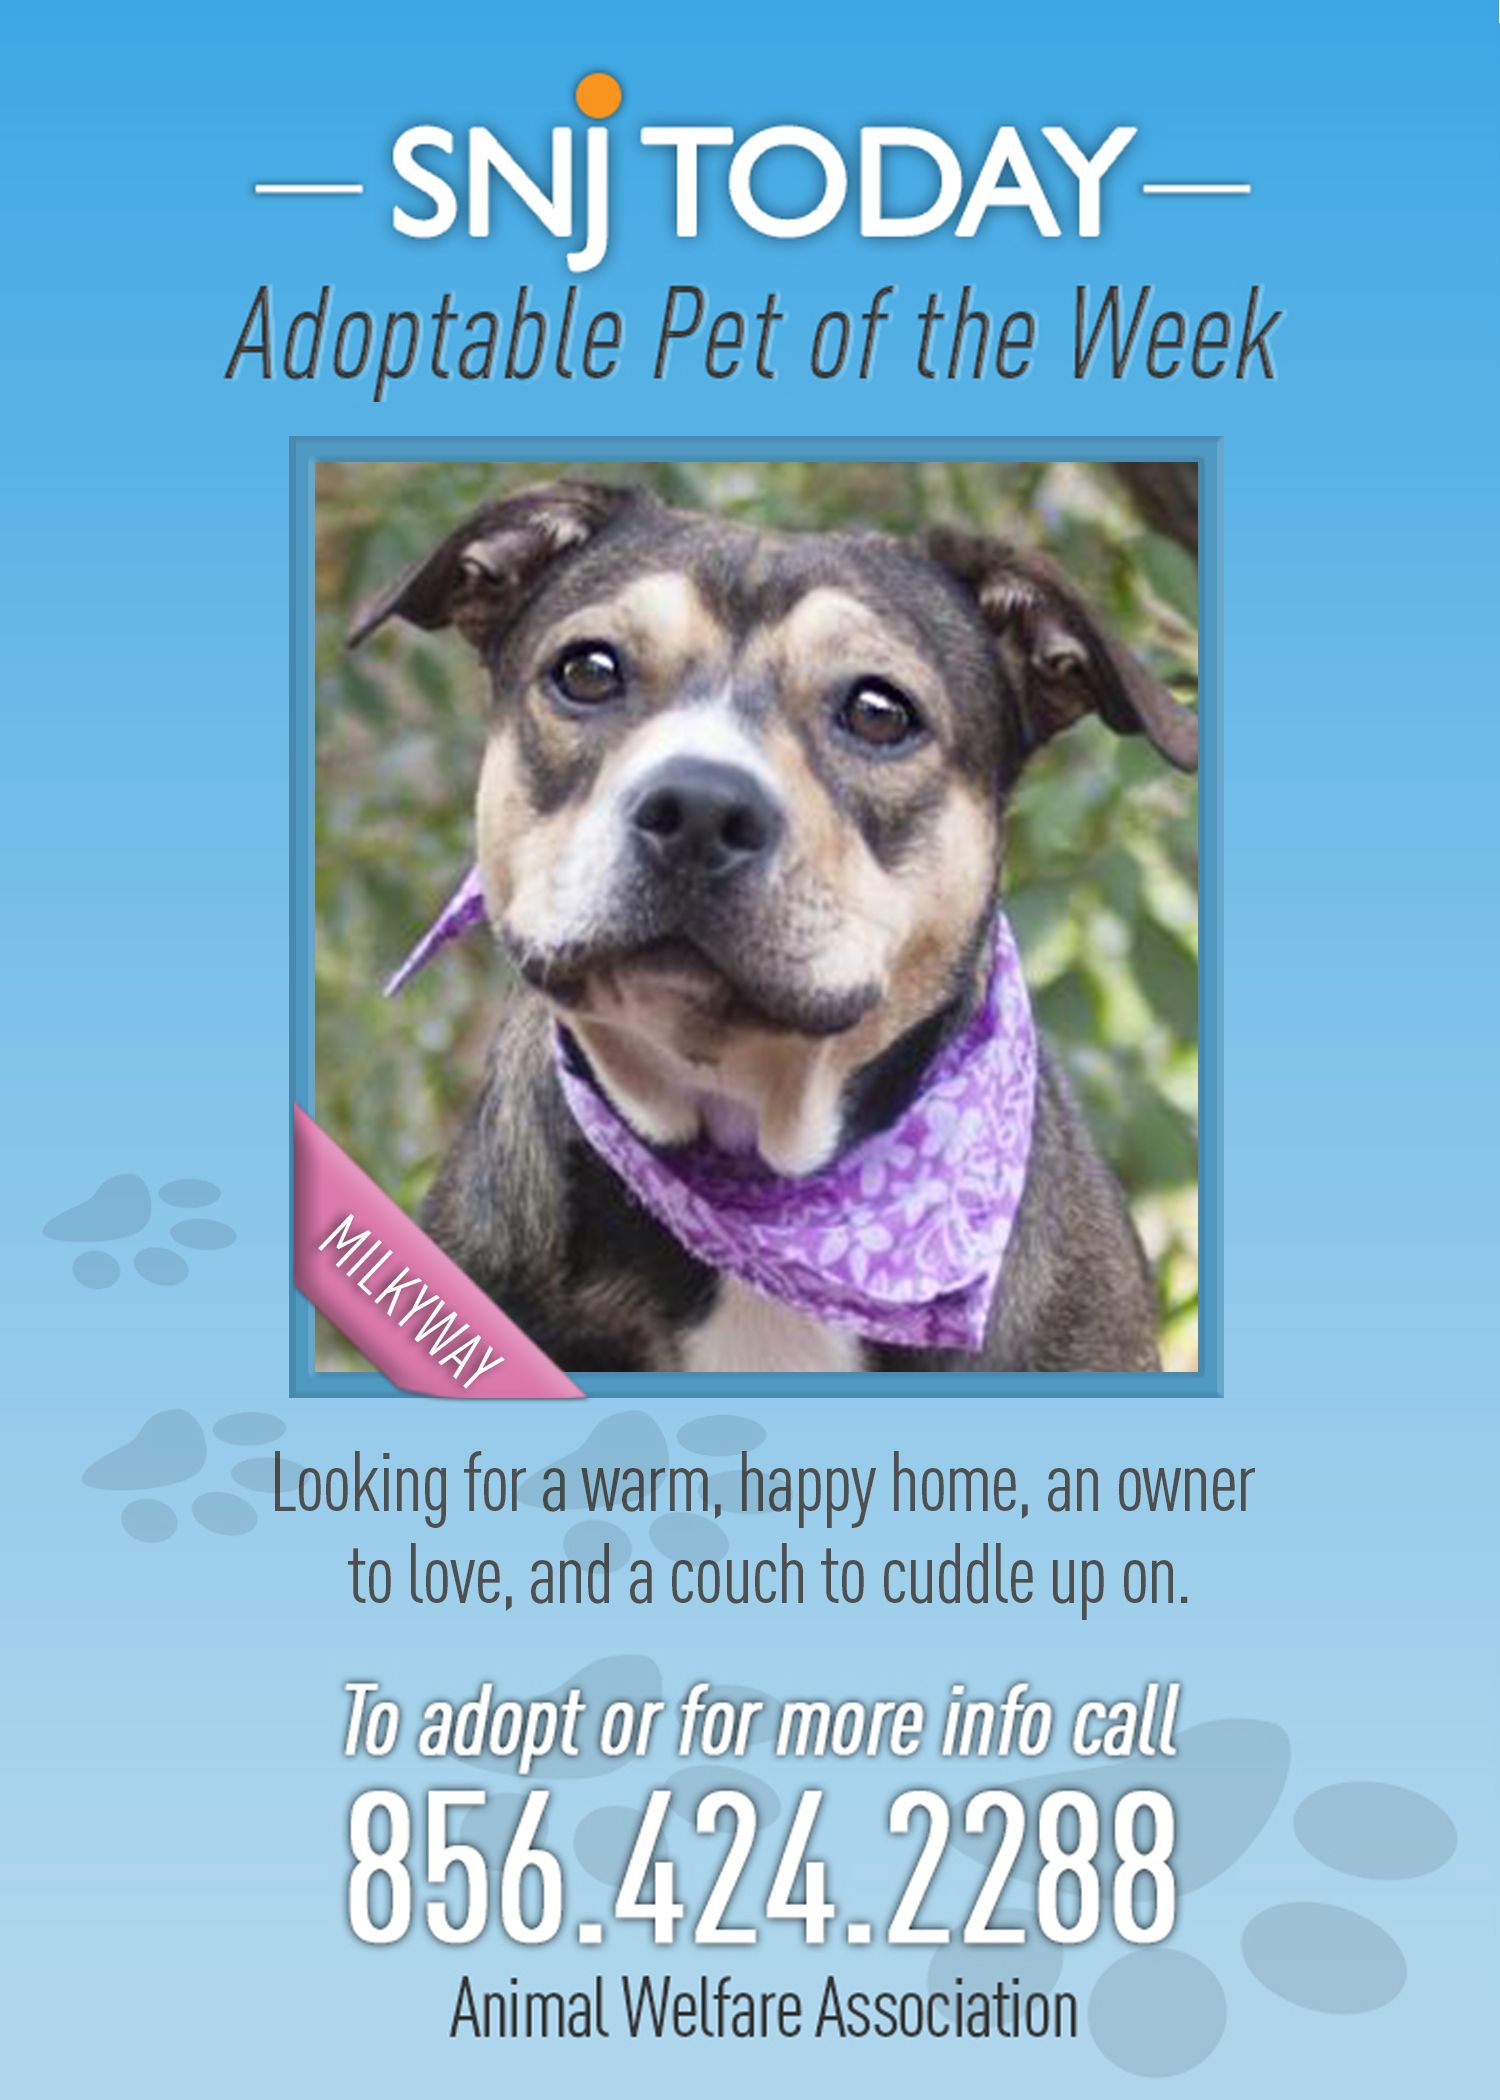 Milkyway Is Snj S Adoptable Pet This 3 Year Old Terrier Beagle Knows Her Commands And Loves To Play If You D L Animal Welfare No Kill Animal Shelter Welfare